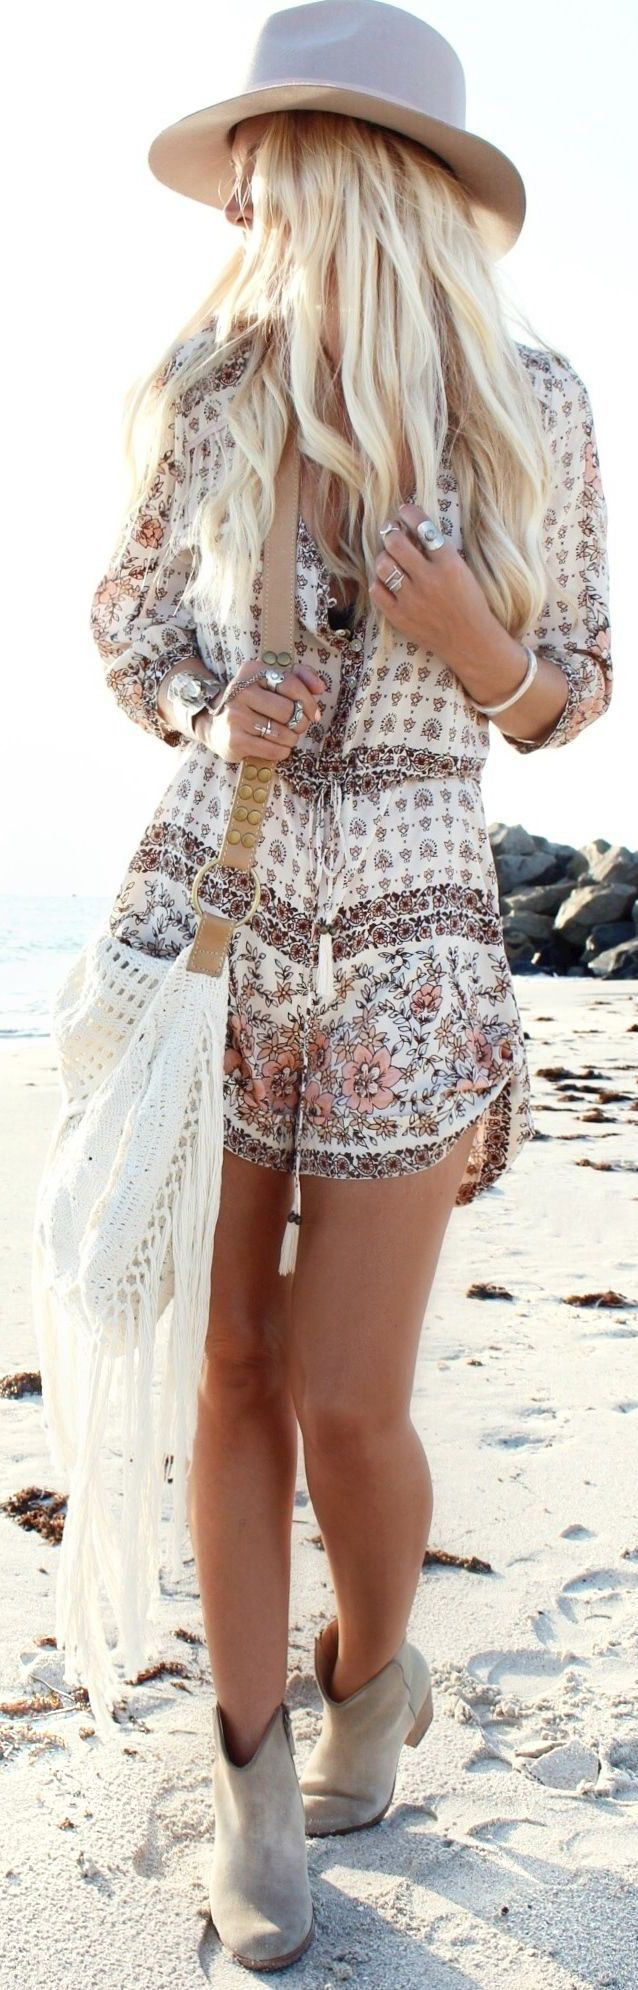 25 summer beach outfits 2017 beach outfit ideas for women strampler h kelspitze und stil Bohemian fashion style pinterest